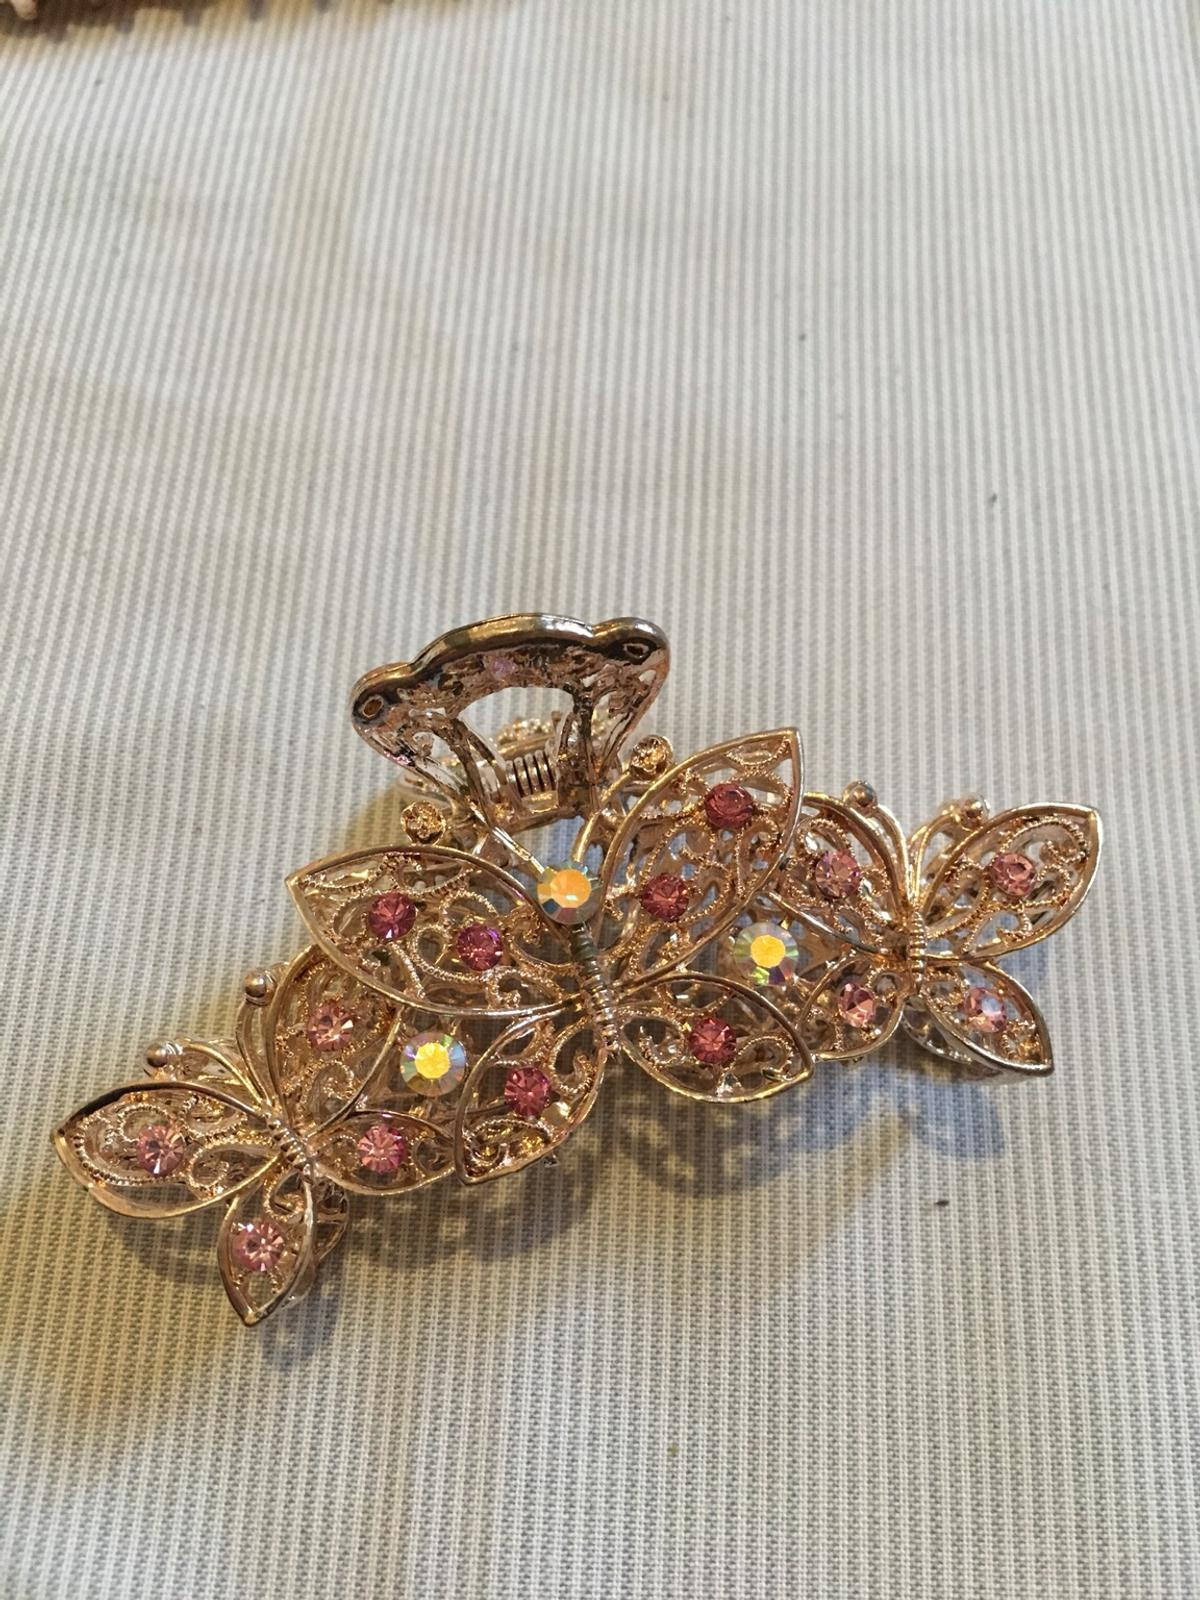 Brand new  Stunning stylish hair clips  Each hair clips is for £4 If you have any question please ask  Thanks